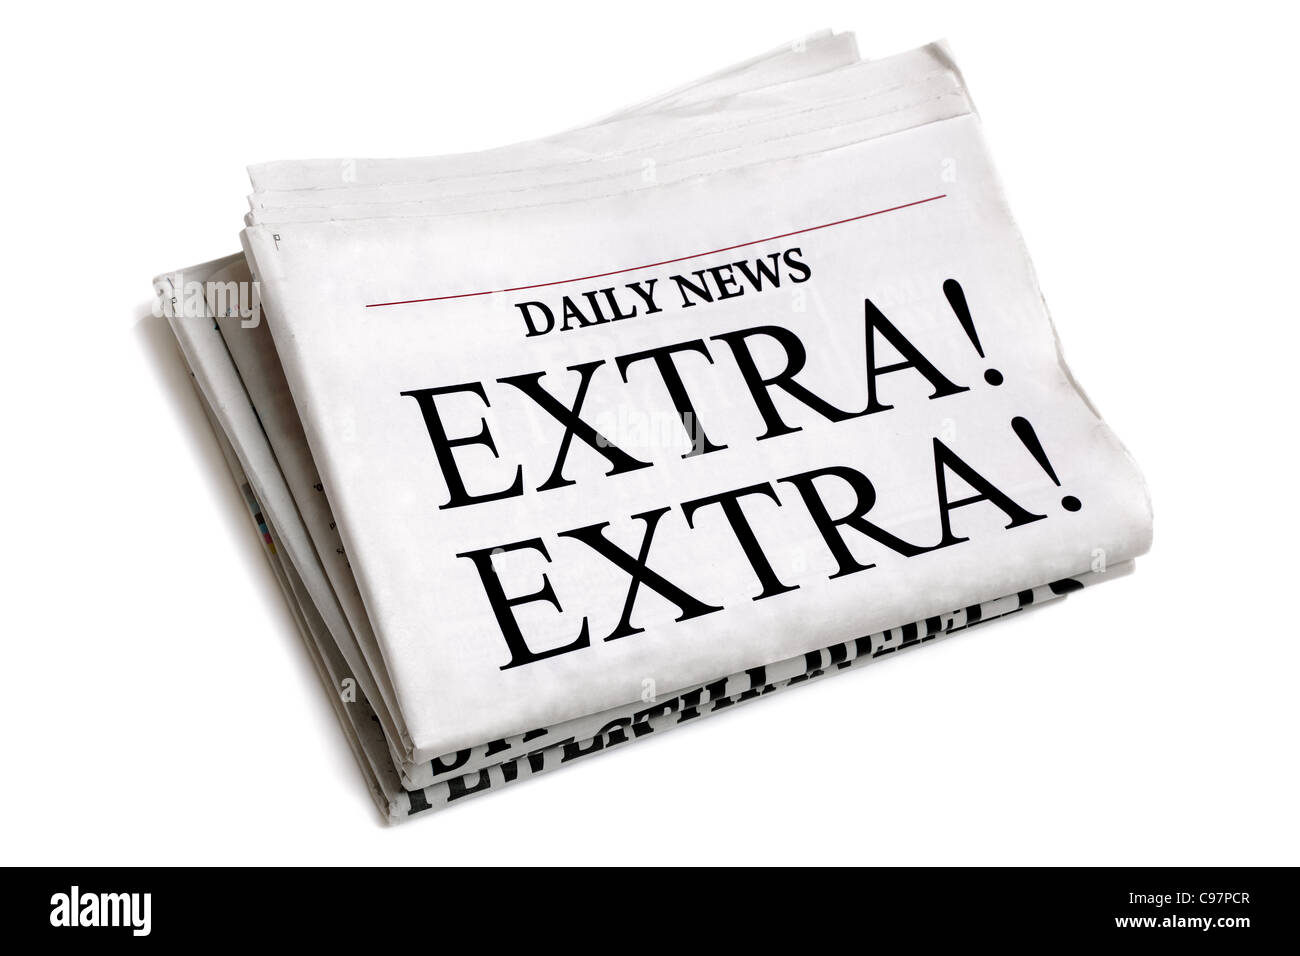 Daily newspaper - Stock Image